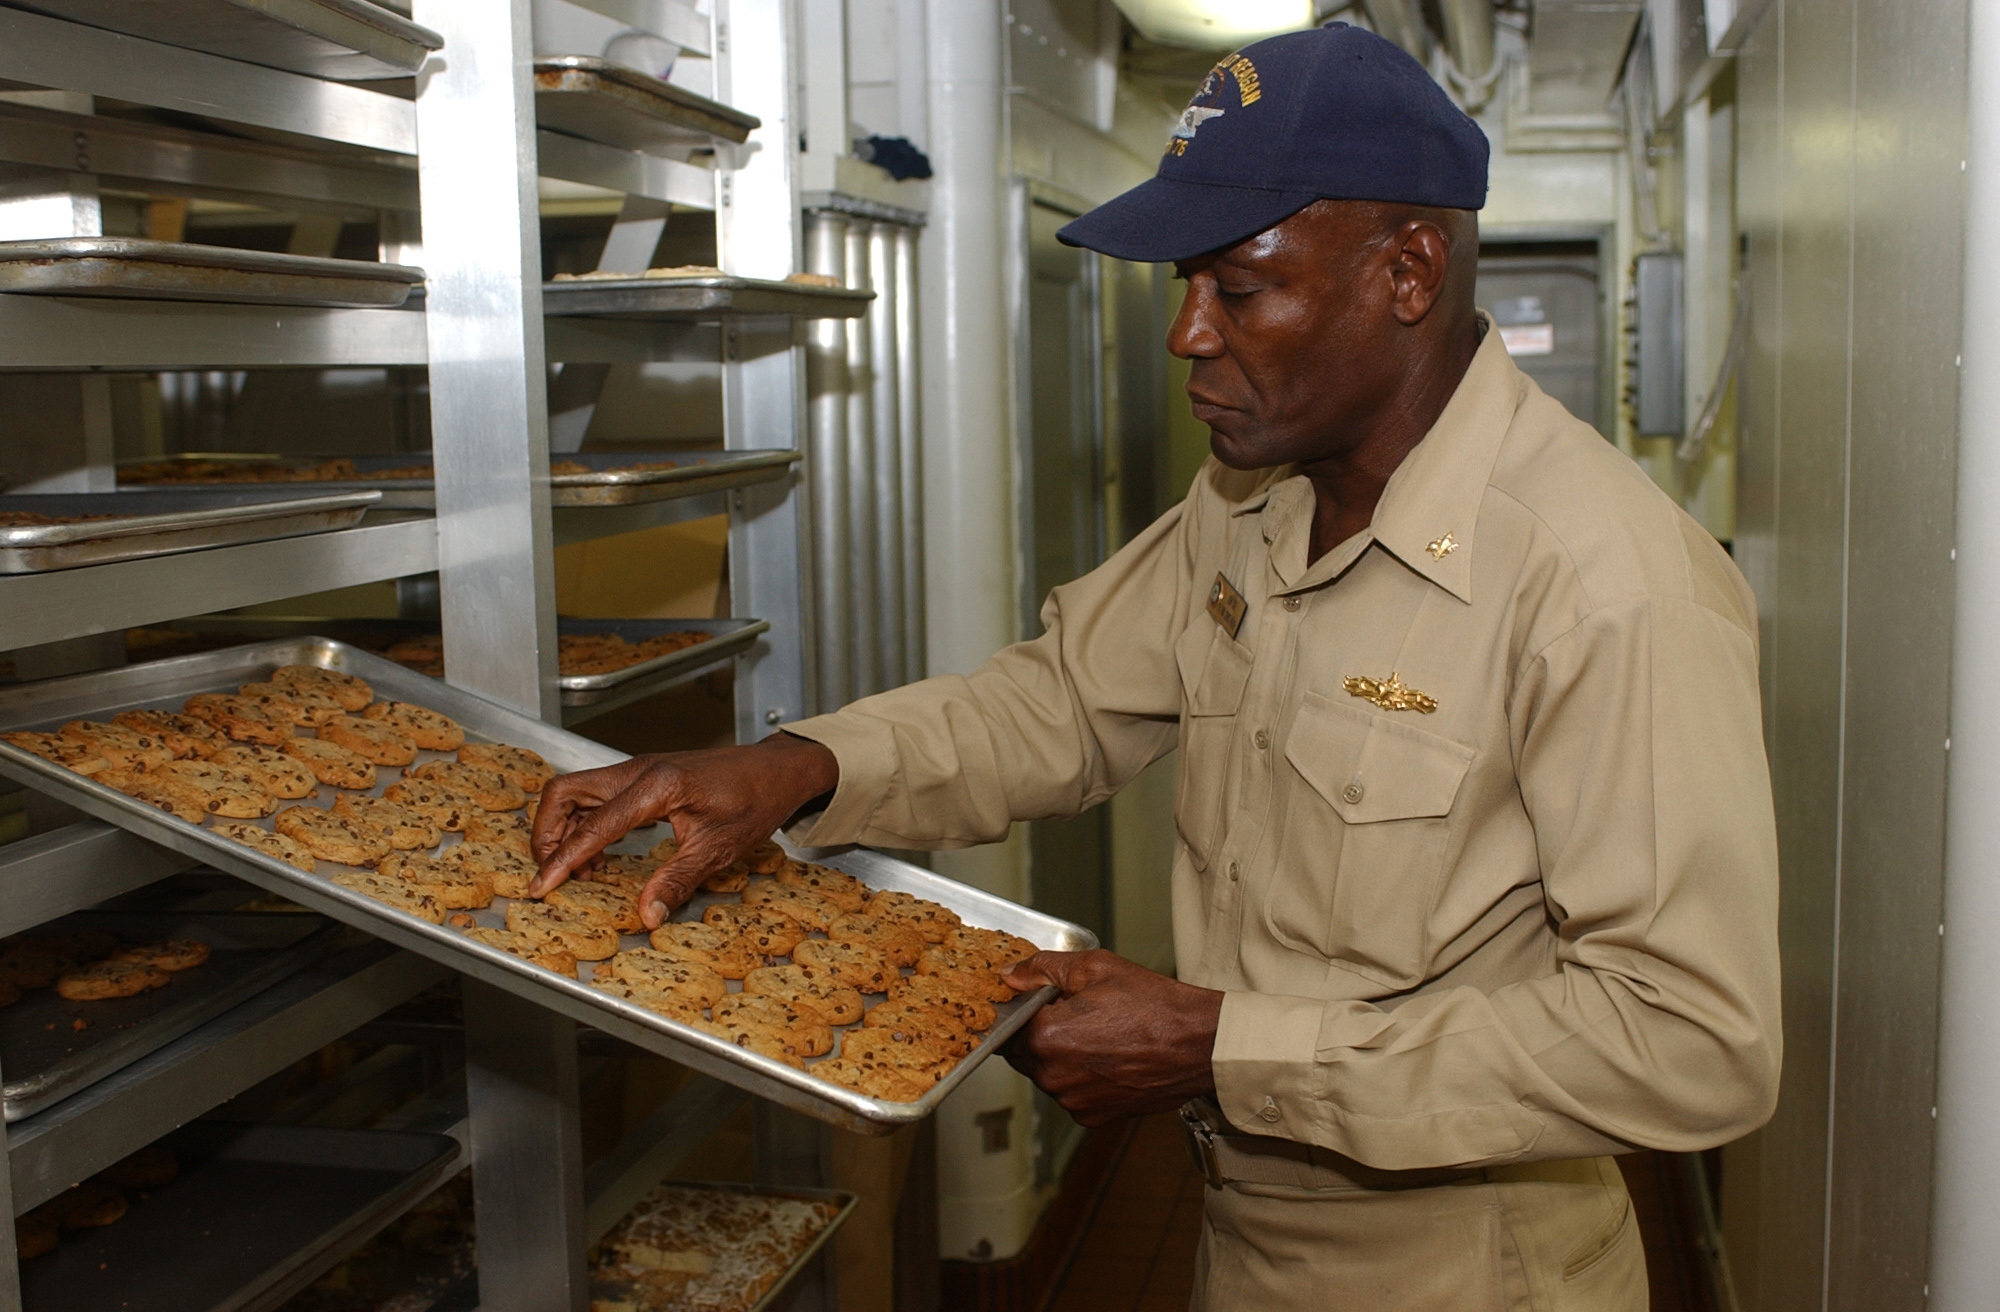 Us Food Service Disposable Reports